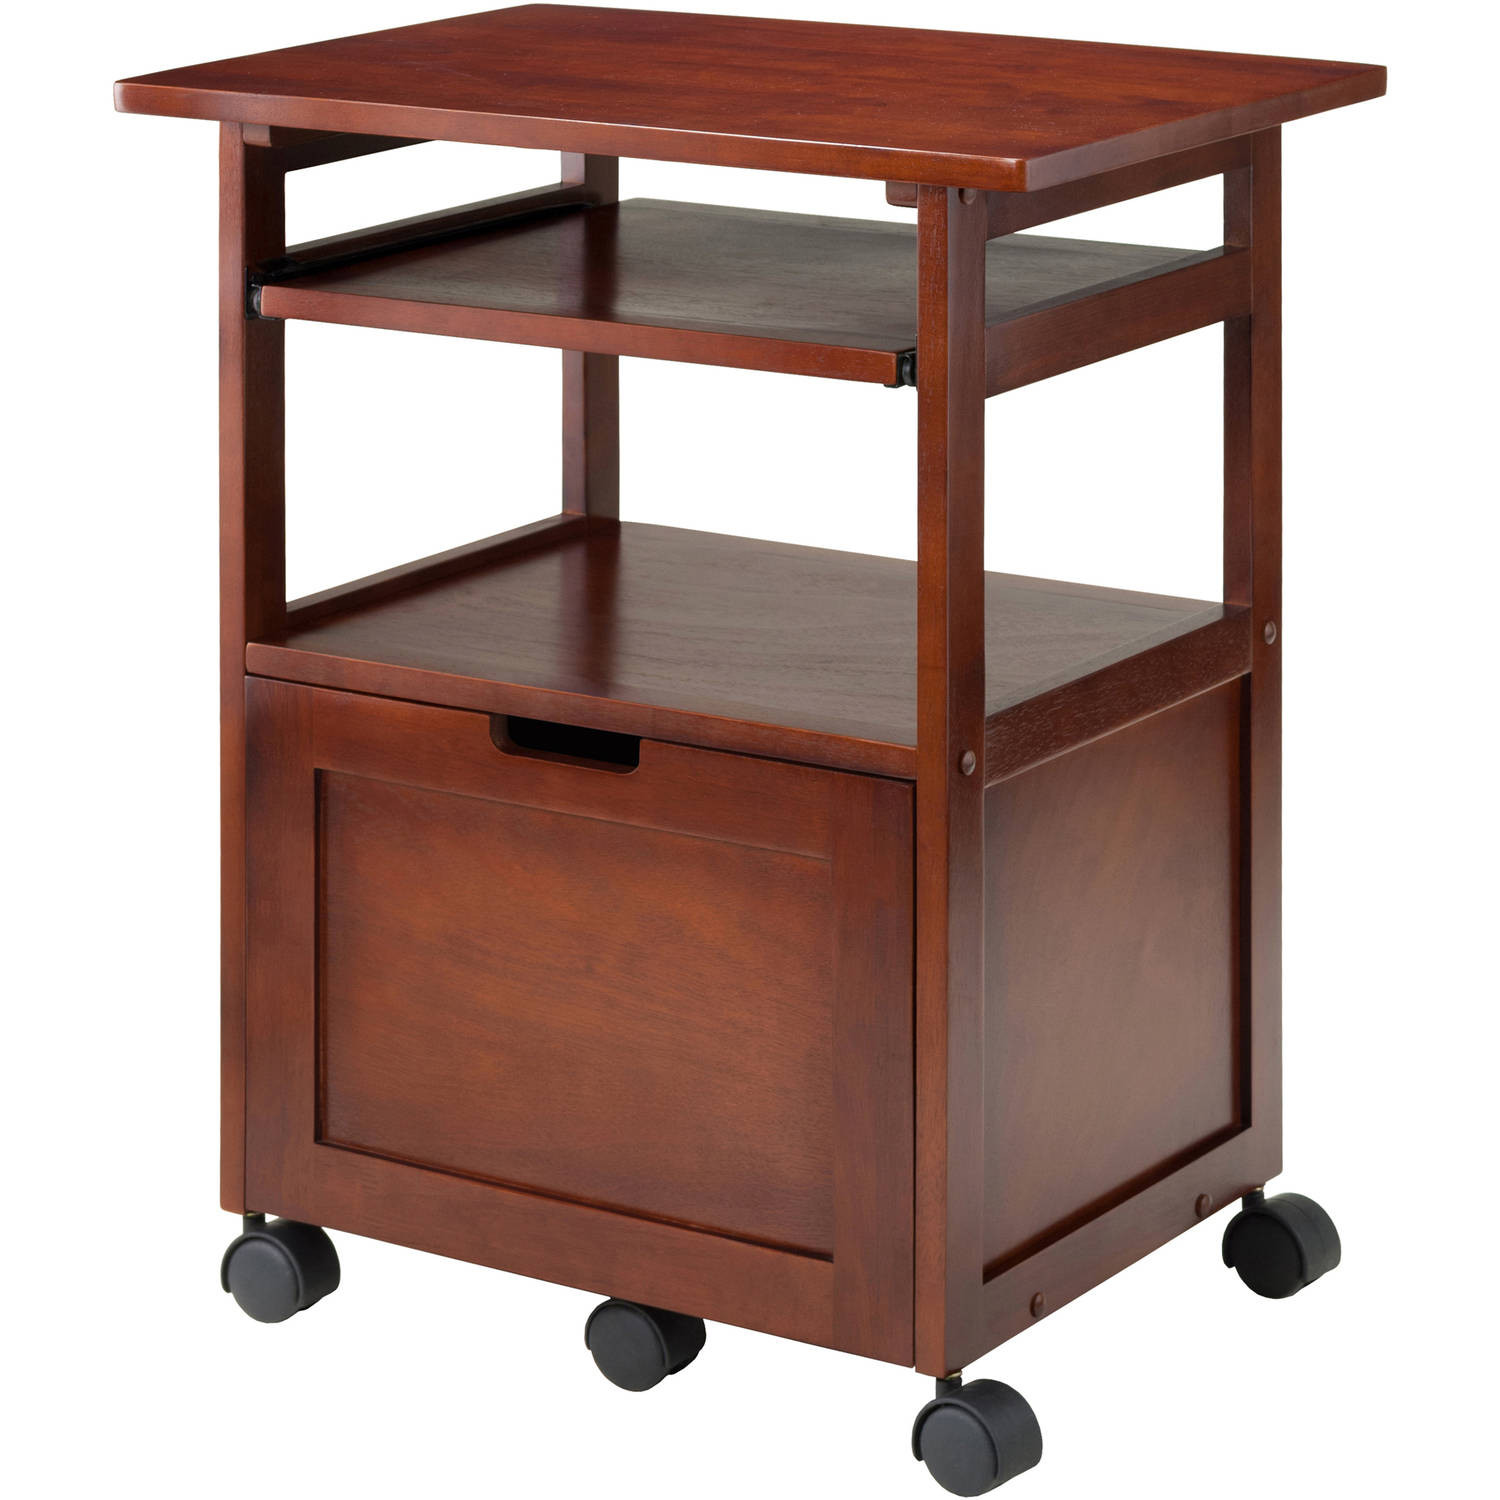 winsome wood shelf espresso great liso corner desk with beechwood end accent table ashley office furniture dining chairs room edmonton pond lily tiffany lamp pottery barn black